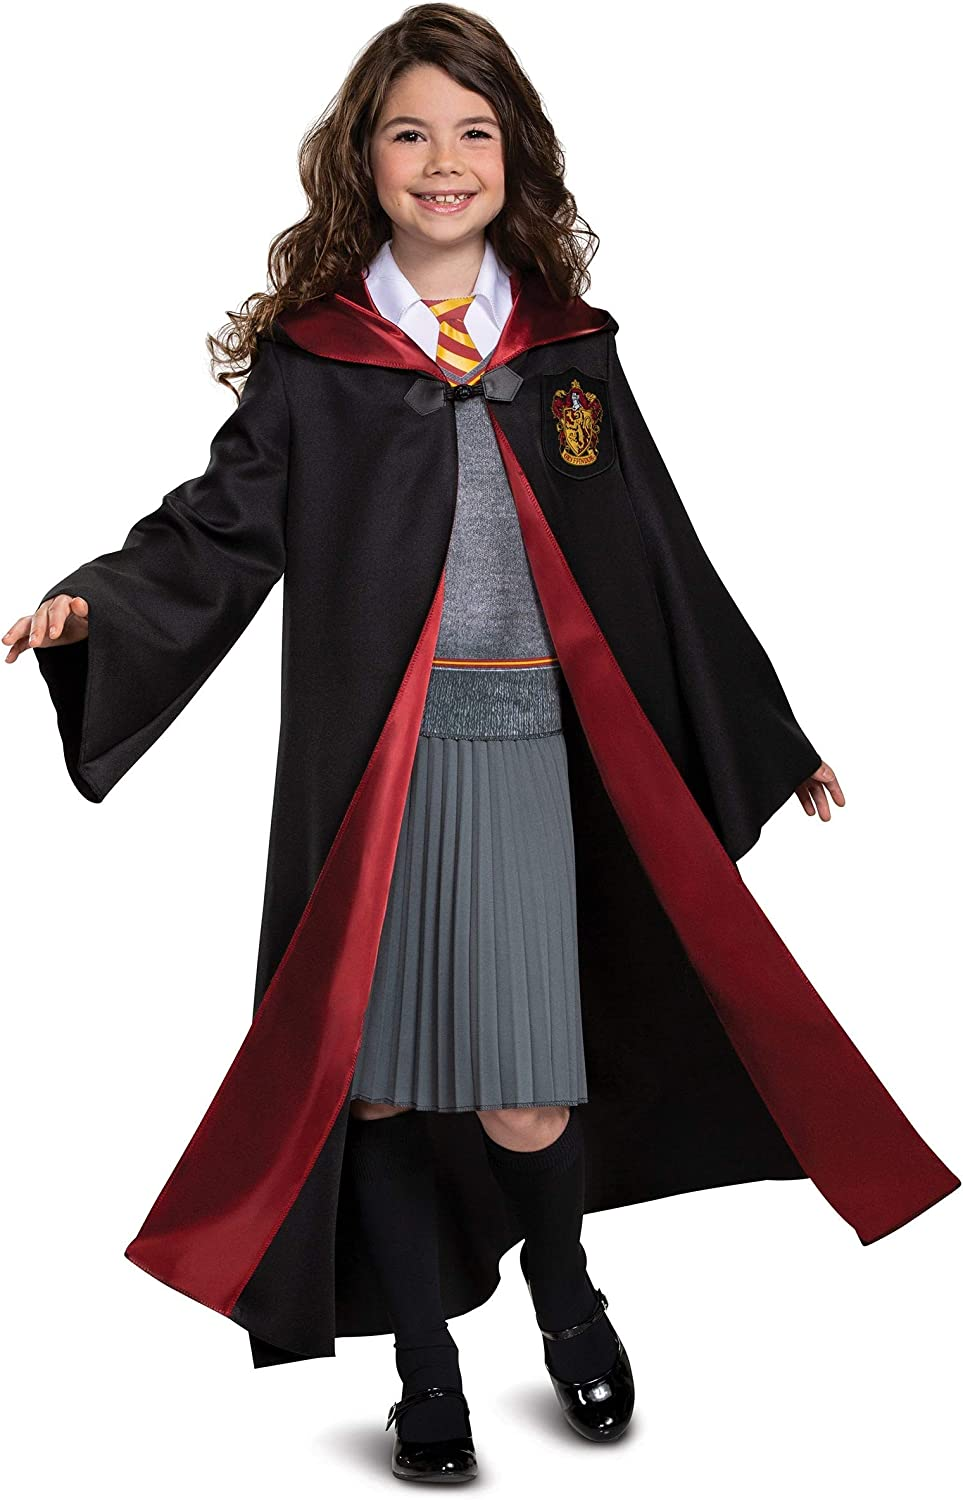 Size 12 Girls Halloween Costumes.Dress Up Pretend Play Disguise Harry Potter Hermione Granger Deluxe Girls Costume Black Red 10 12 Kids Size Large Toys Games